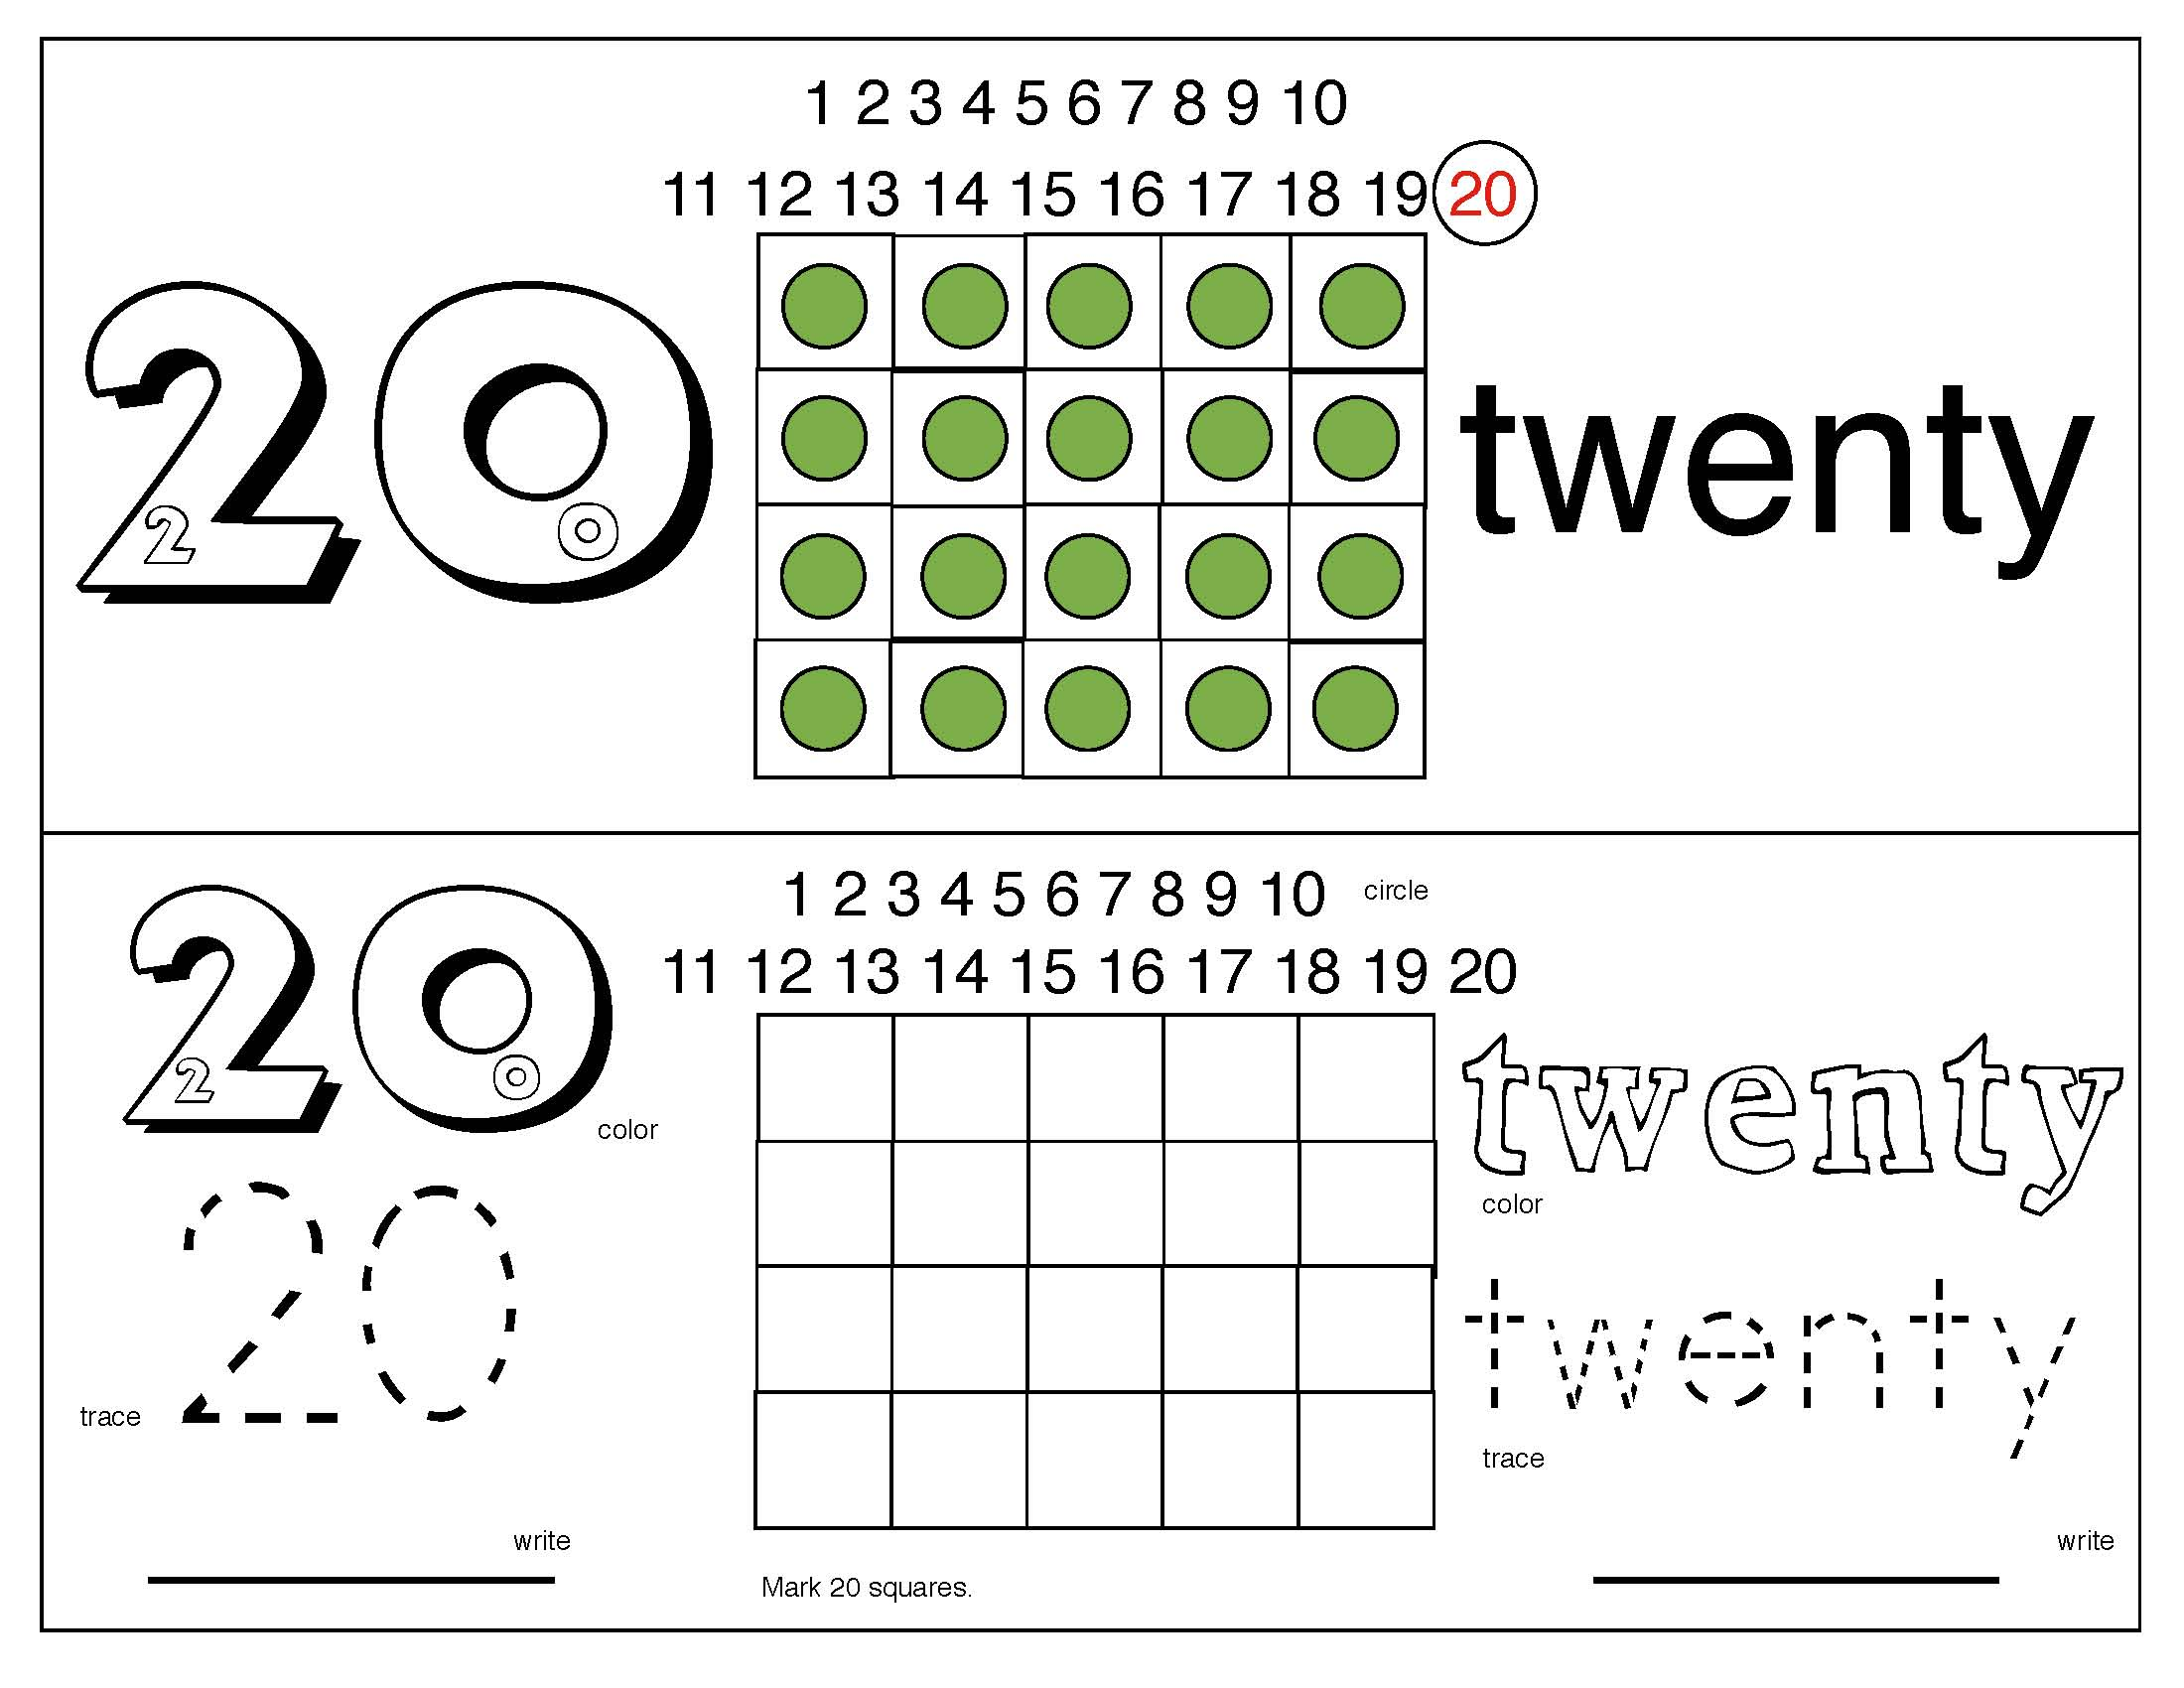 10 frame puzzles, ten frames, 10 frame templates, ten frame activties, ten frame booklets, ten frame worksheets, ten frame cards, common core math for kindergarten, common core math for 1st, 10 frame activities, 10 frame templates,